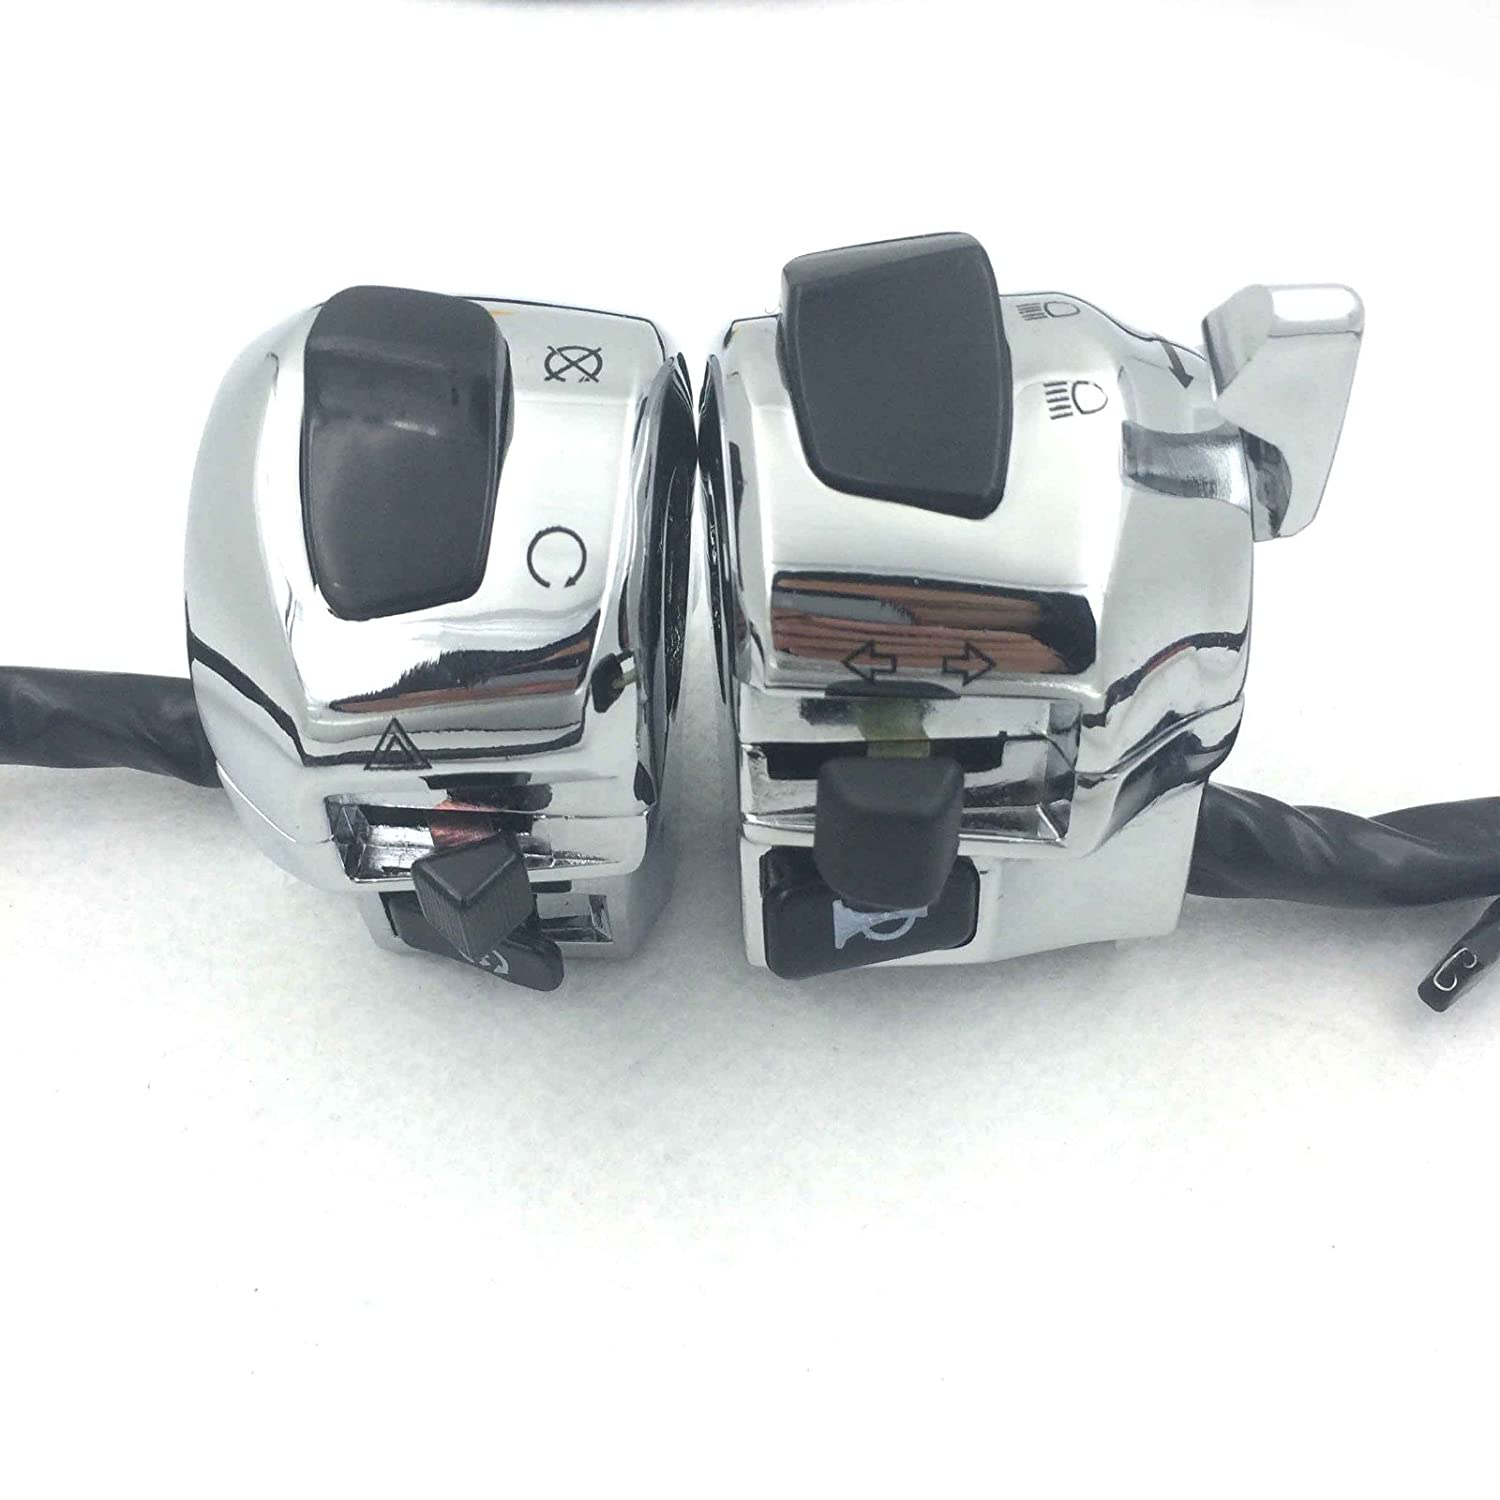 SMT GROUP Chrome LEFT+RIGHT Switch Fit for Suzuki GSX-R600/GSX-R750/GSX-R1000/TL1000/Hayabusa GSX1300R US Model SMT-MOTO